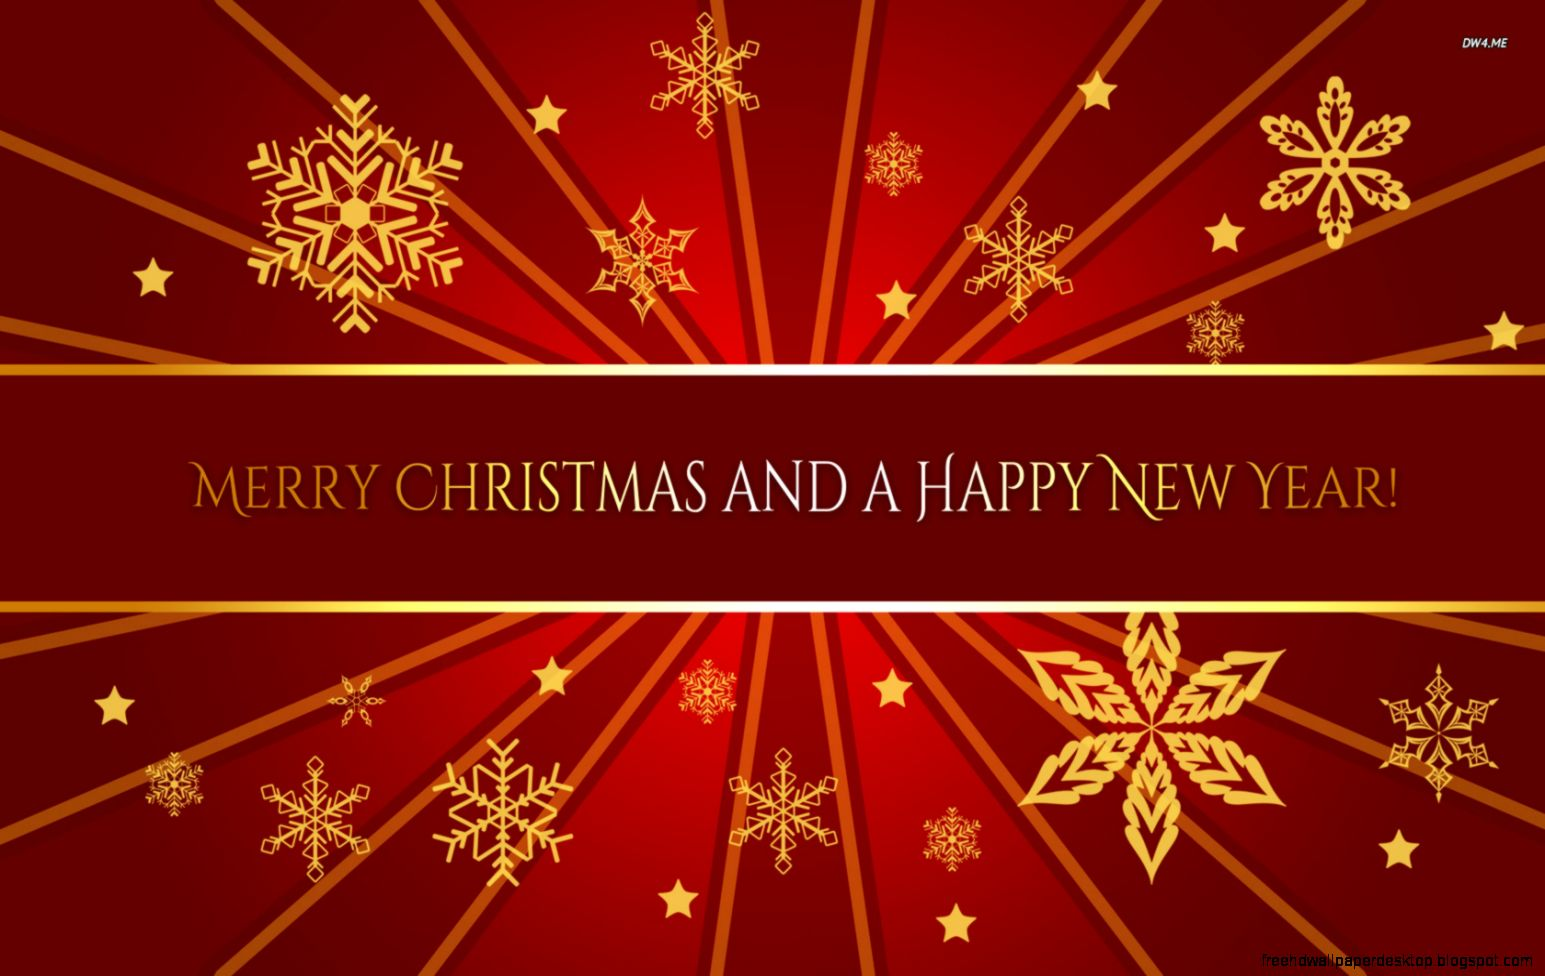 merry christmas happy new year happy holidays wallpaper | free high